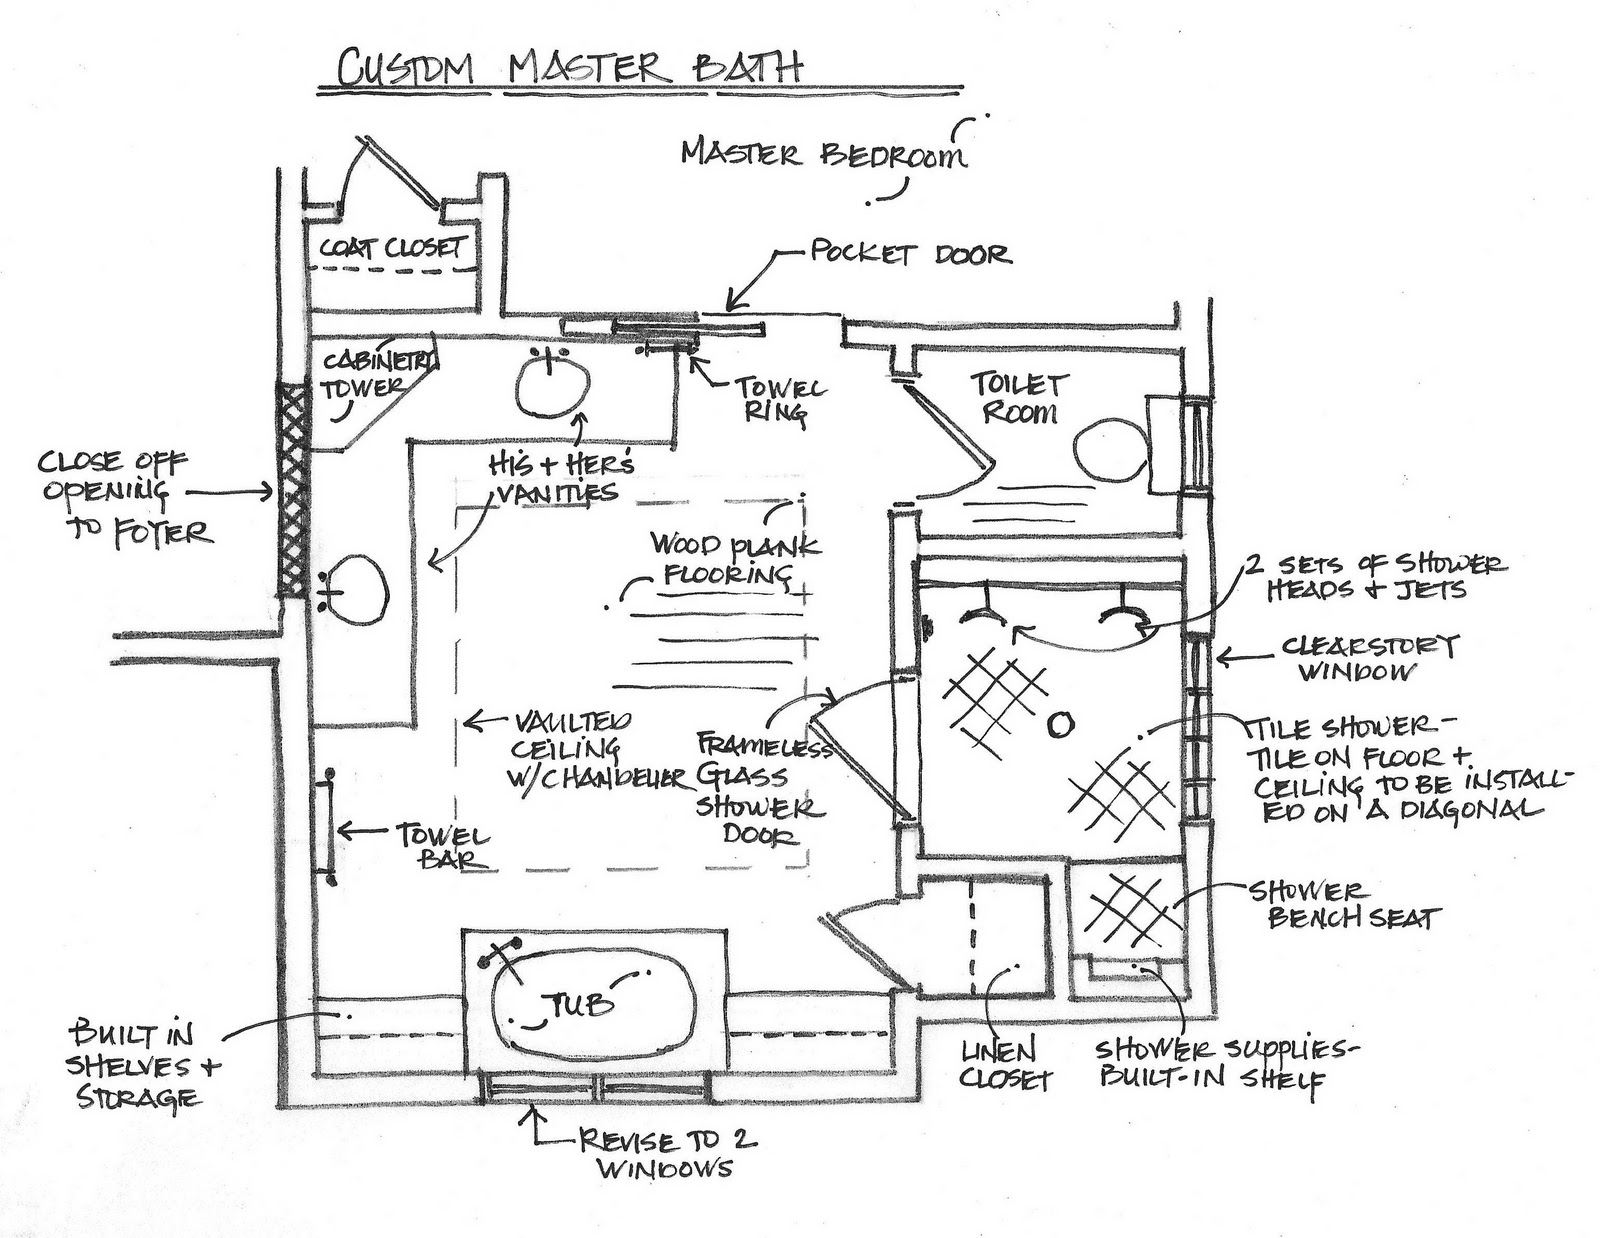 Master Bathroom Layouts For Small Spaces